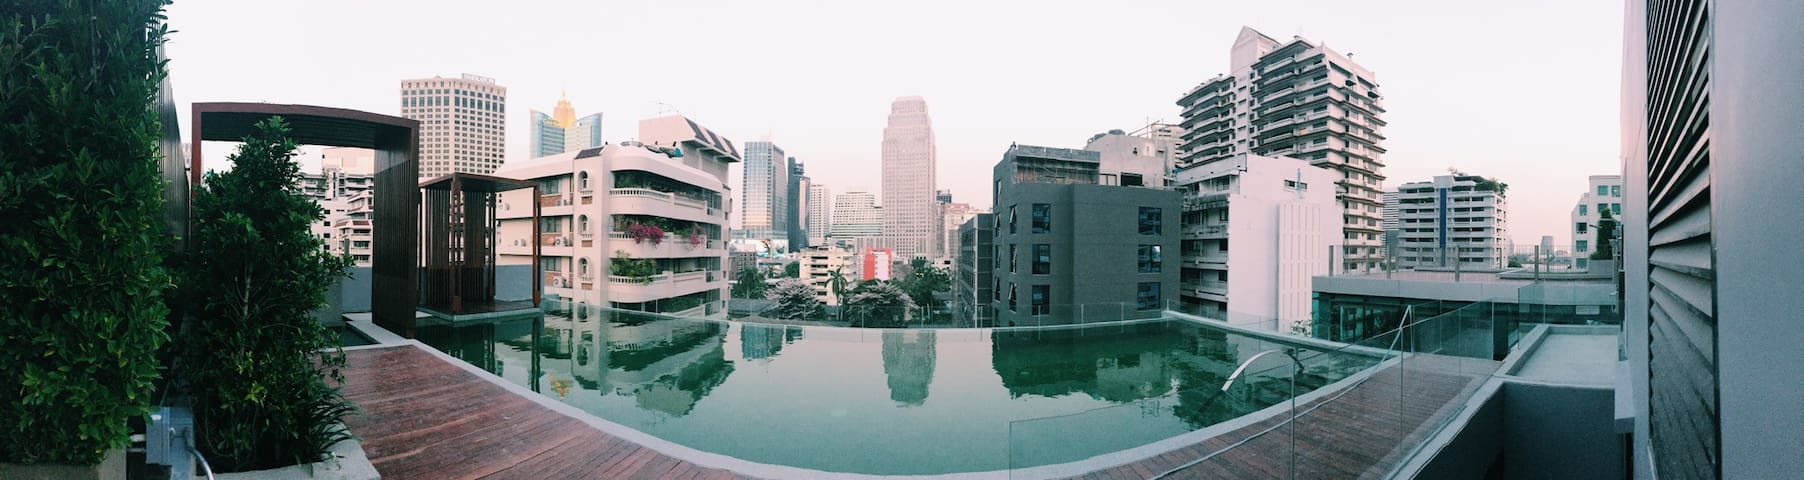 BANGKOK HEART Nana Sukhumvit with infinite pool - 曼谷 - Apartamento